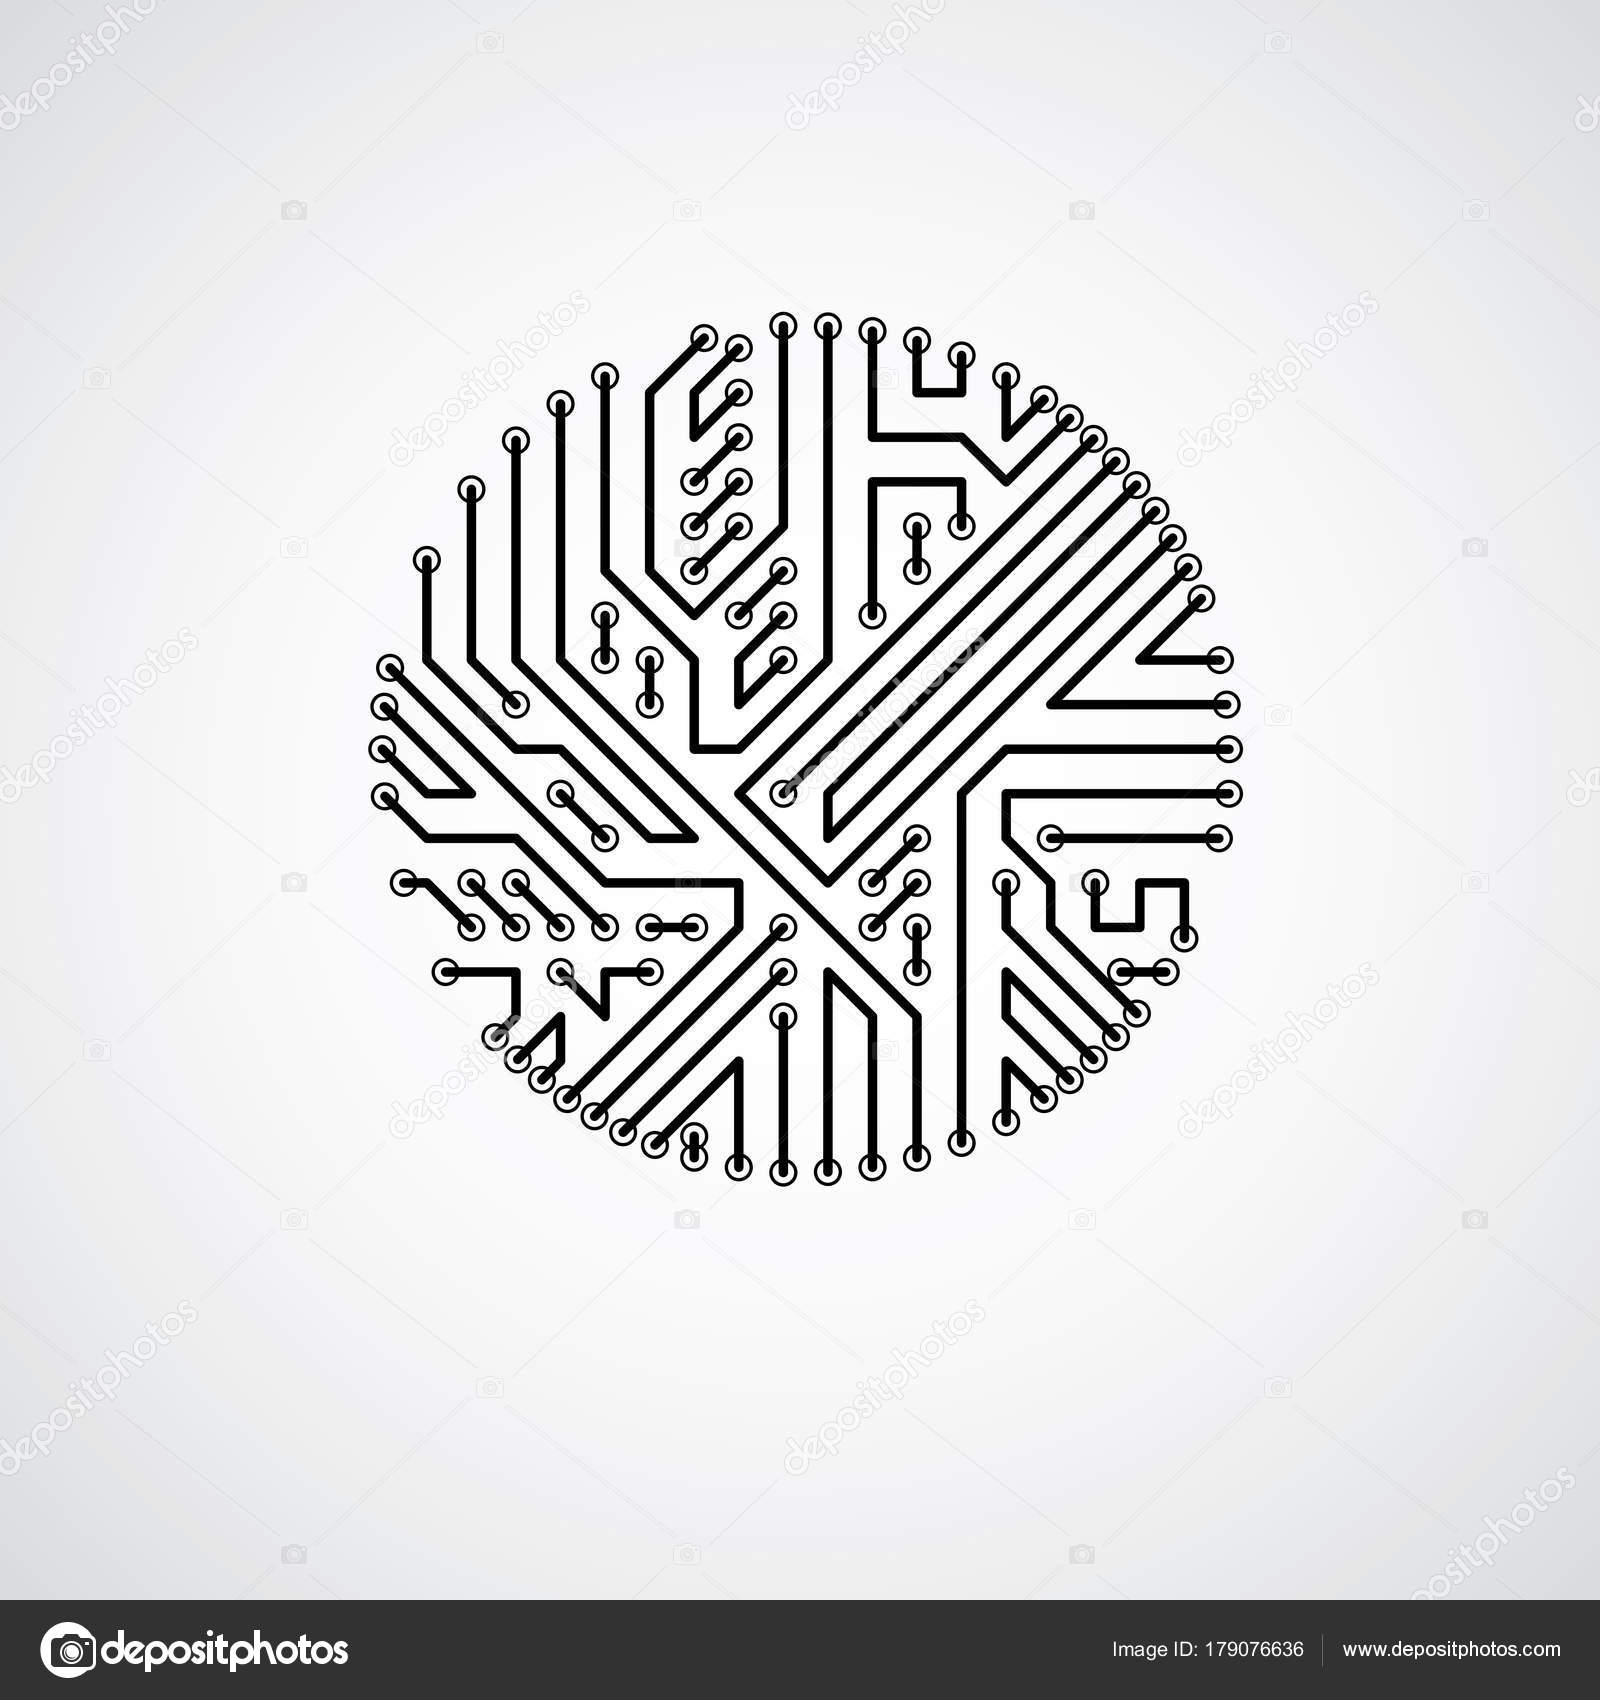 vector abstract technology illustration monochrome circuit board